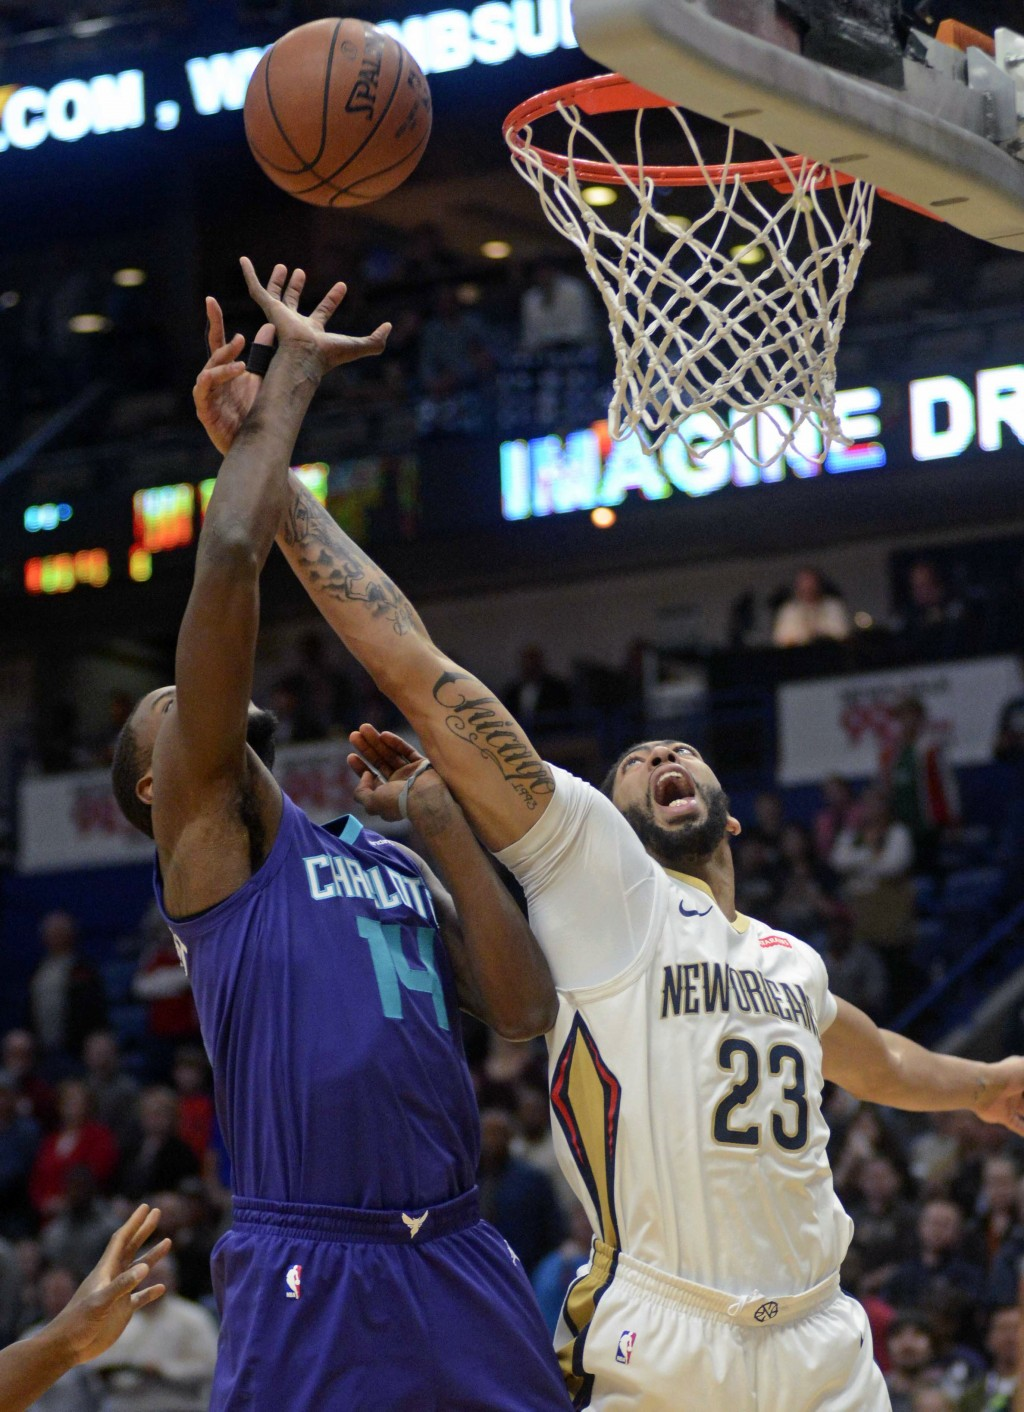 Charlotte Hornets forward Michael Kidd-Gilchrist (14) shoots the ball against New Orleans Pelicans forward Anthony Davis (23) in the first half of an